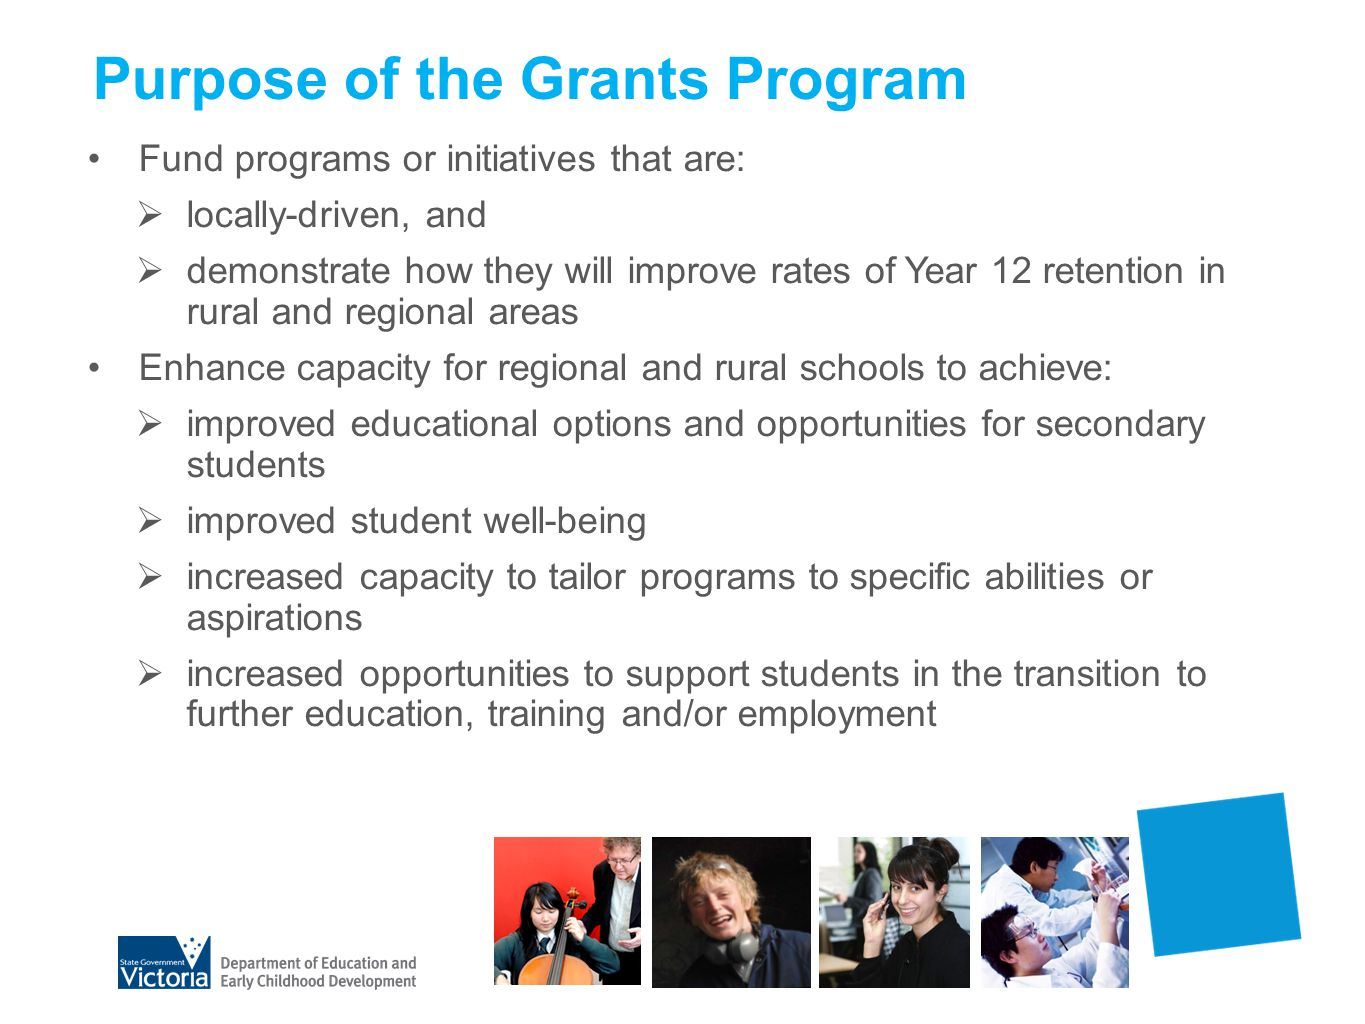 Purpose of the Grants Program Fund programs or initiatives that are: locally-driven, and demonstrate how they will improve rates of Year 12 retention